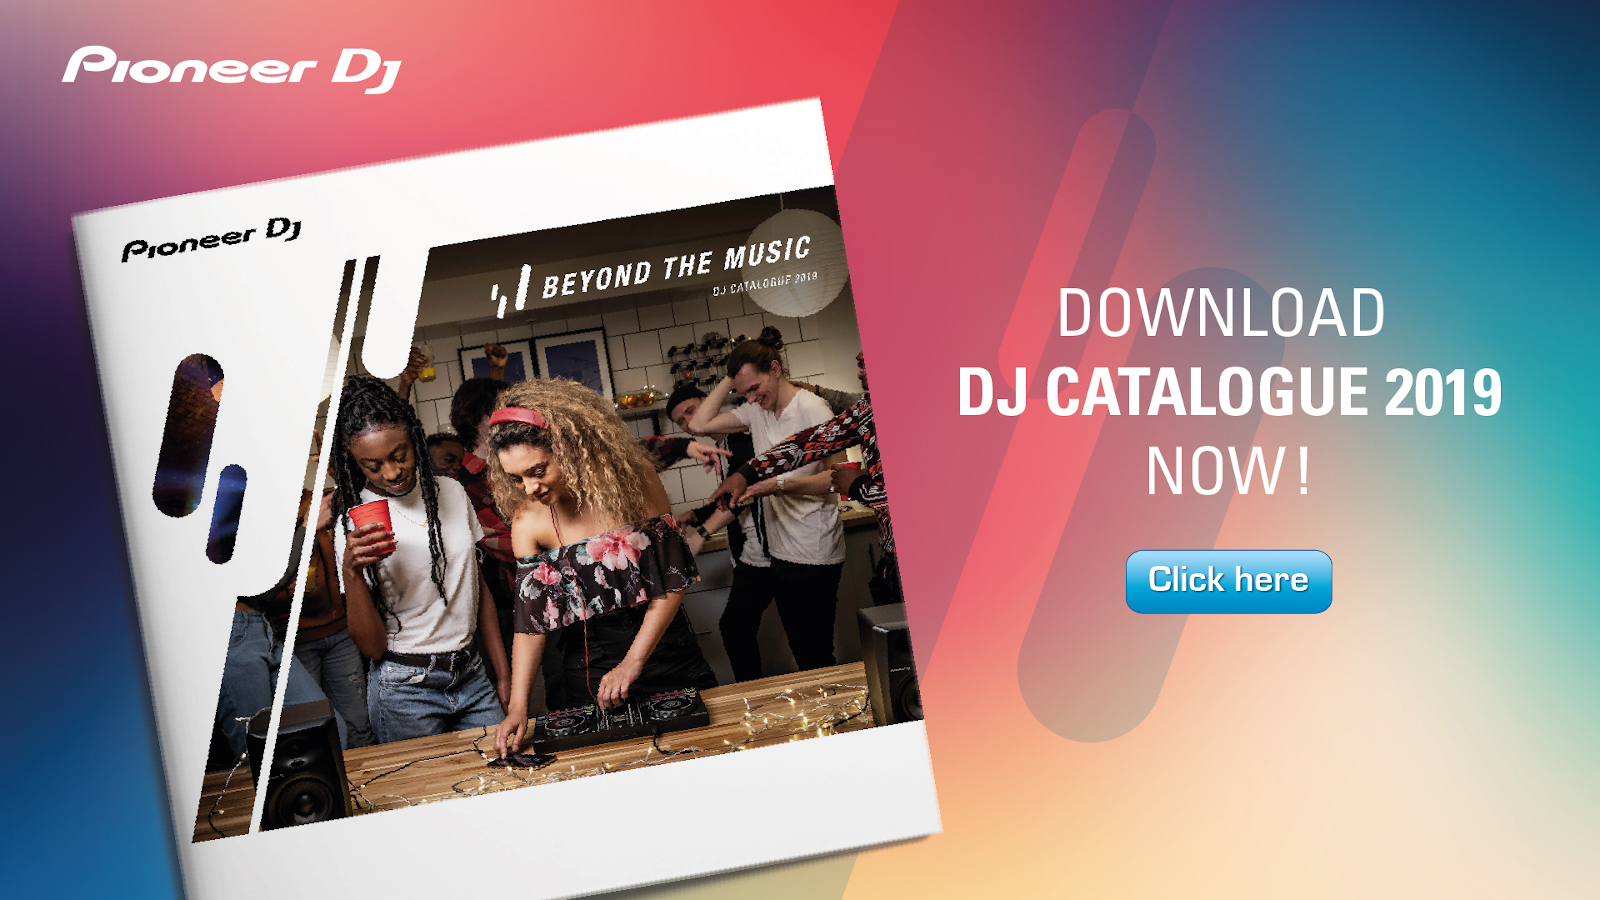 Pioneer DJ Revealed 2019 DJ Catalogue – Download Now